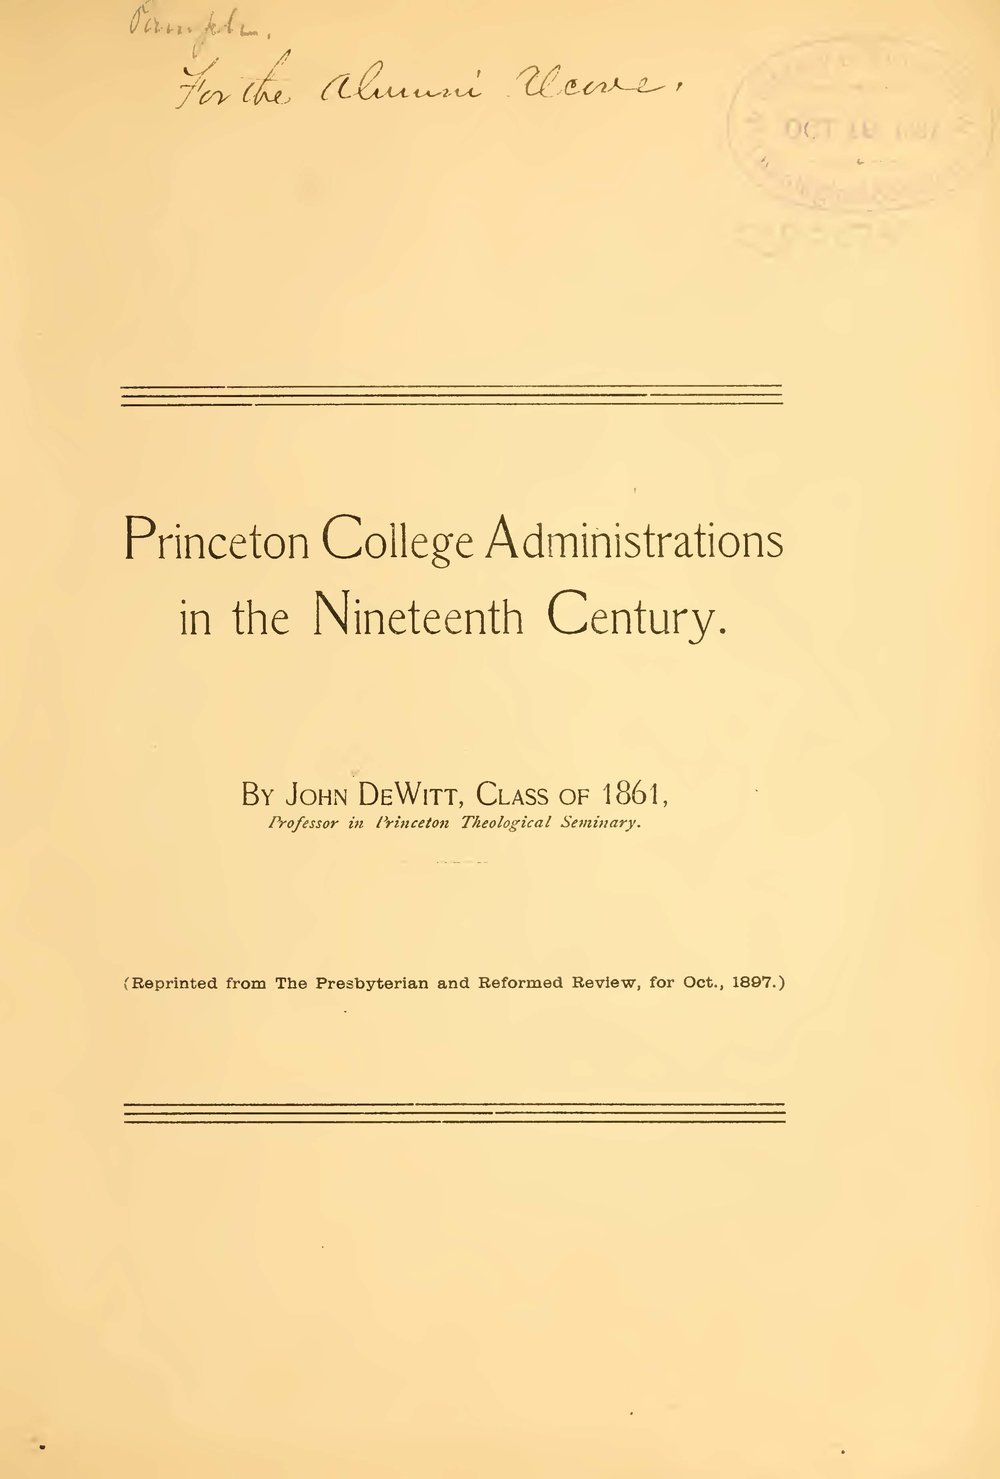 DeWitt, John, Princeton College Administrations in the Nineteenth Century Title Page.jpg